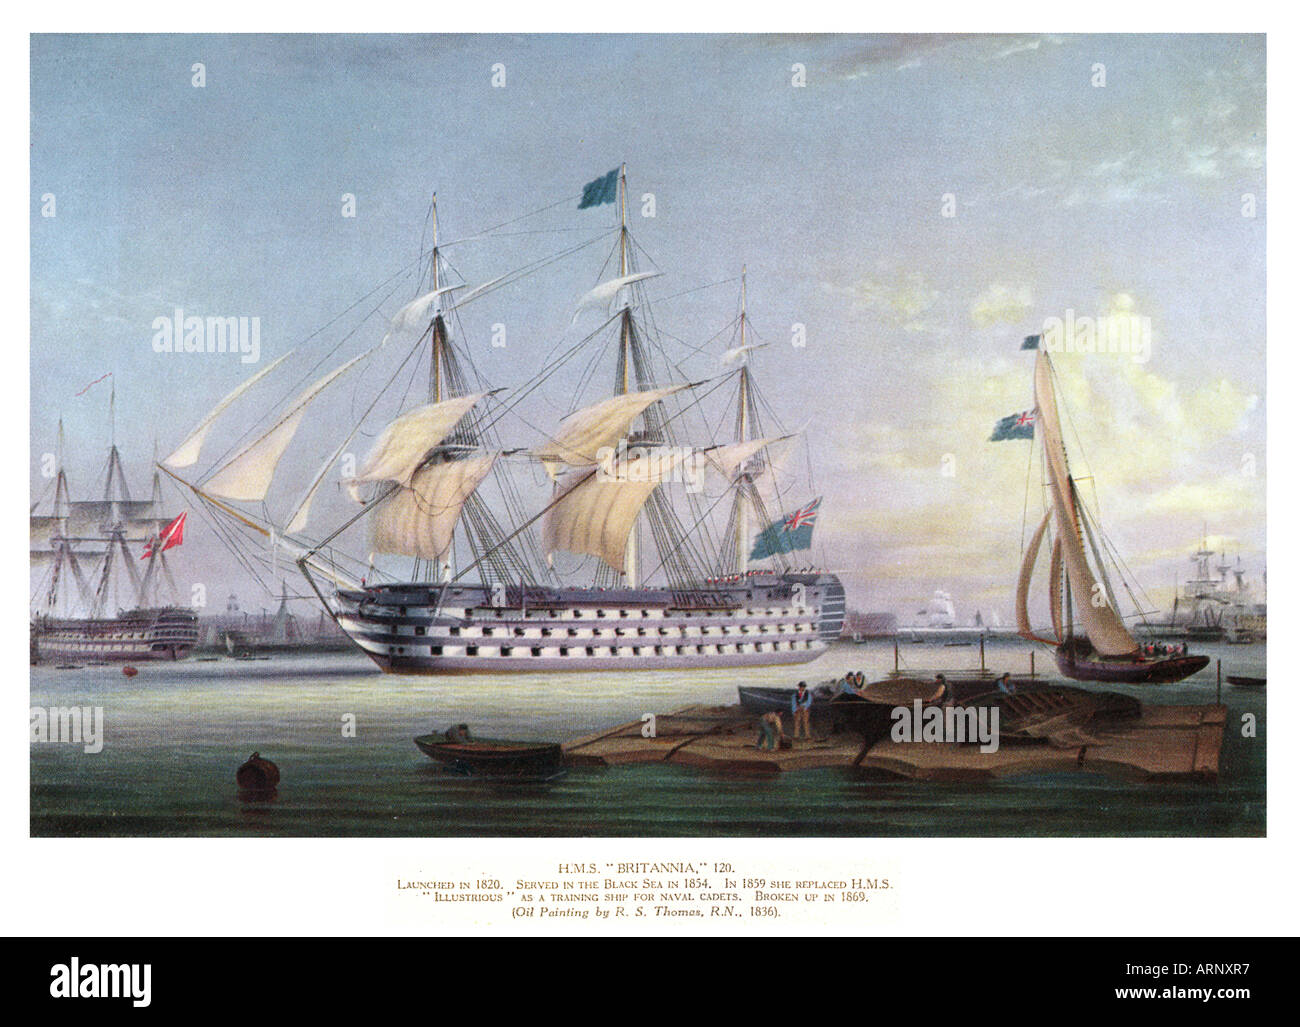 HMS Britannia An 1836 painting of the battleship launched in 1820 served in The Crimean War and broken up in 1869 - Stock Image